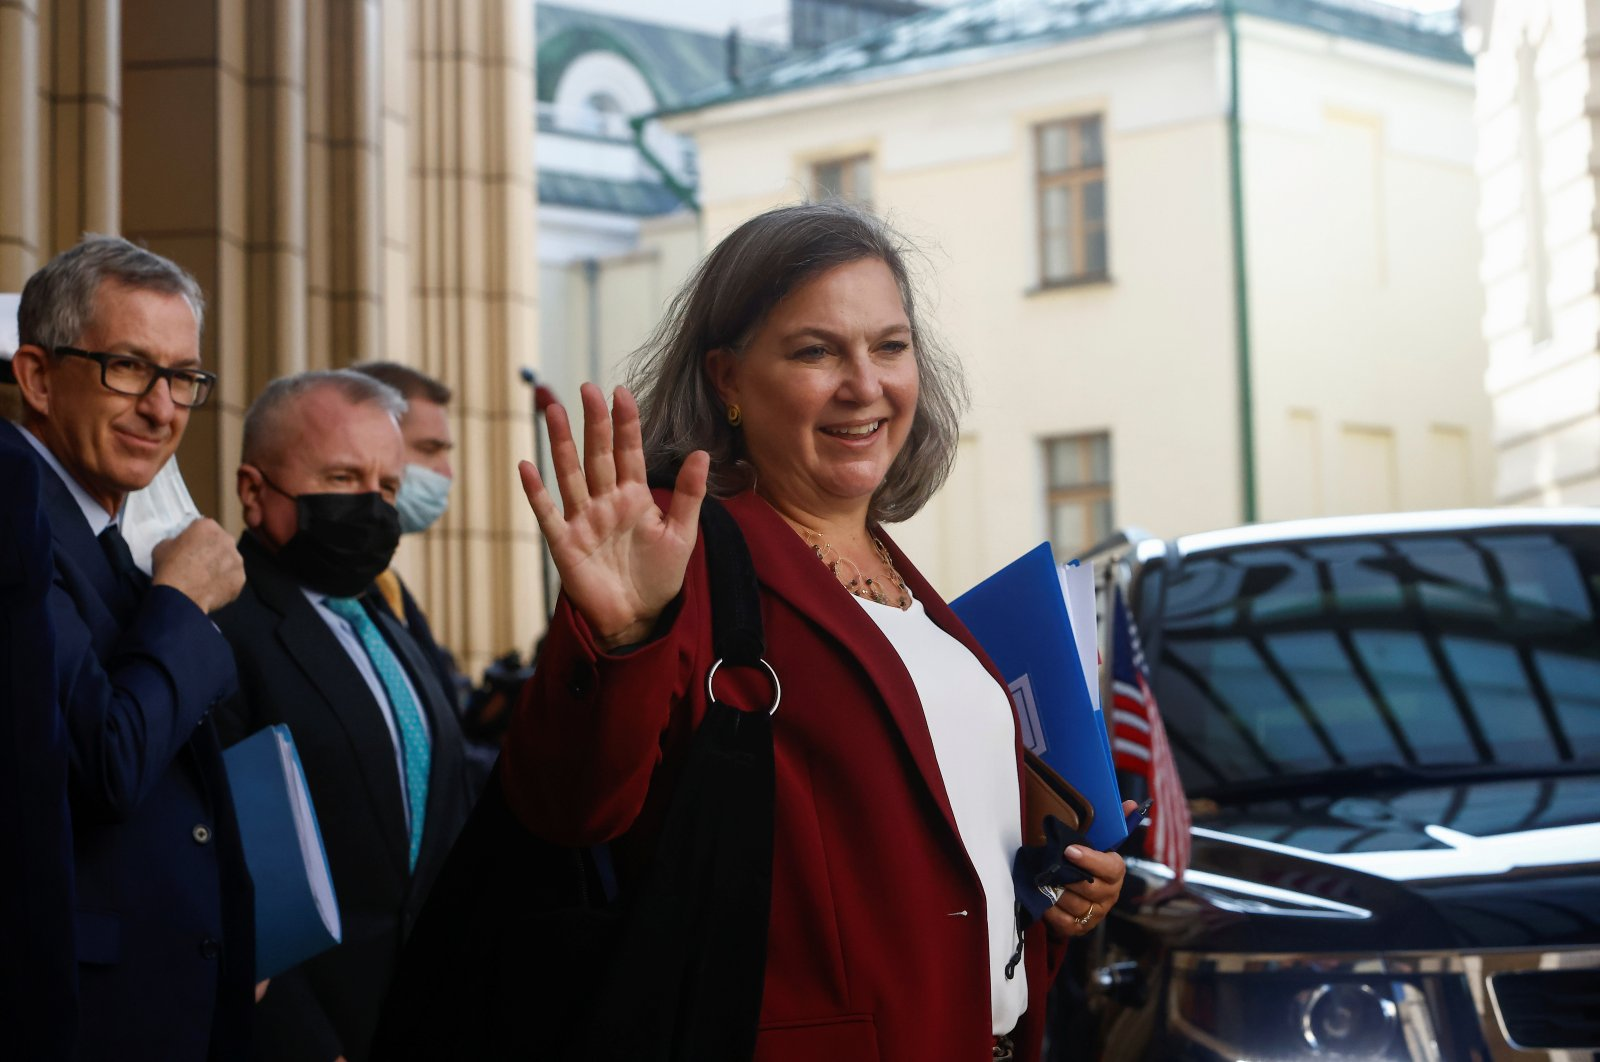 U.S. Under Secretary of State Victoria Nuland reacts while walking out of the headquarters of Russia's Foreign Ministry after talks with Russian officials in Moscow, Russia, Oct. 12, 2021. (Reuters Photo)